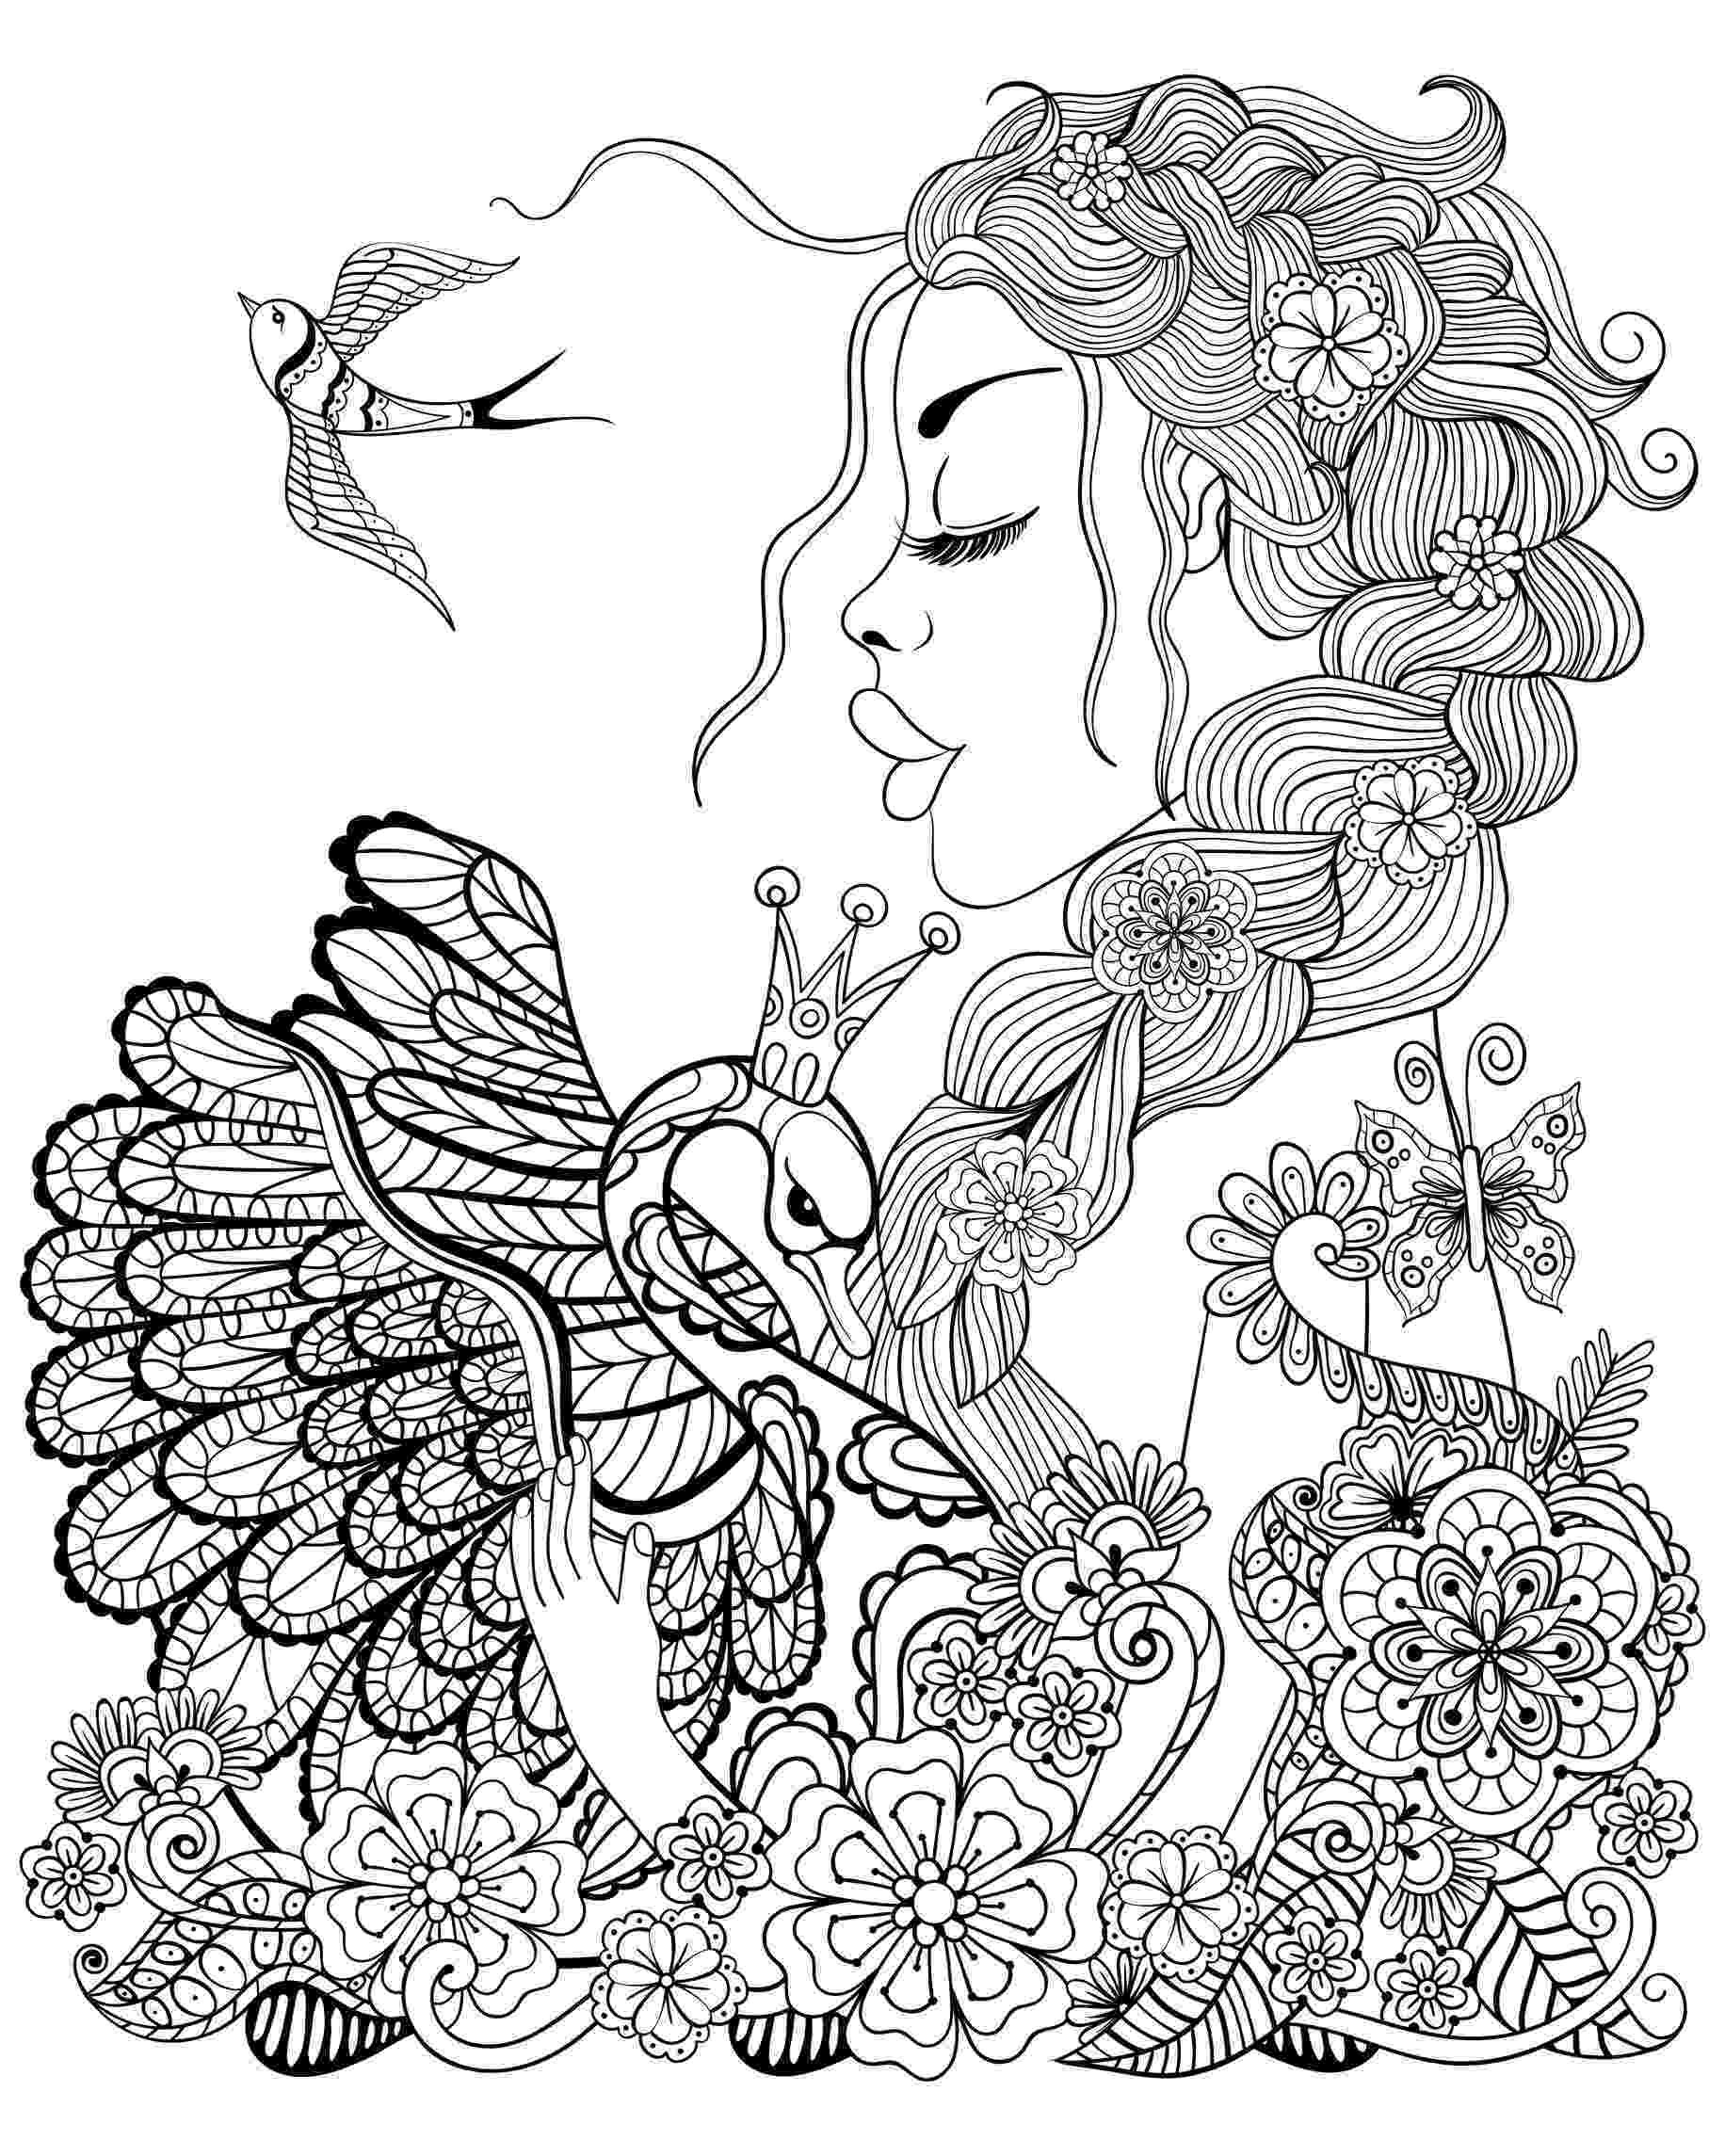 coloring book for adults beautiful day i love you dad adult colouringheartslove zentangles day book beautiful adults coloring for